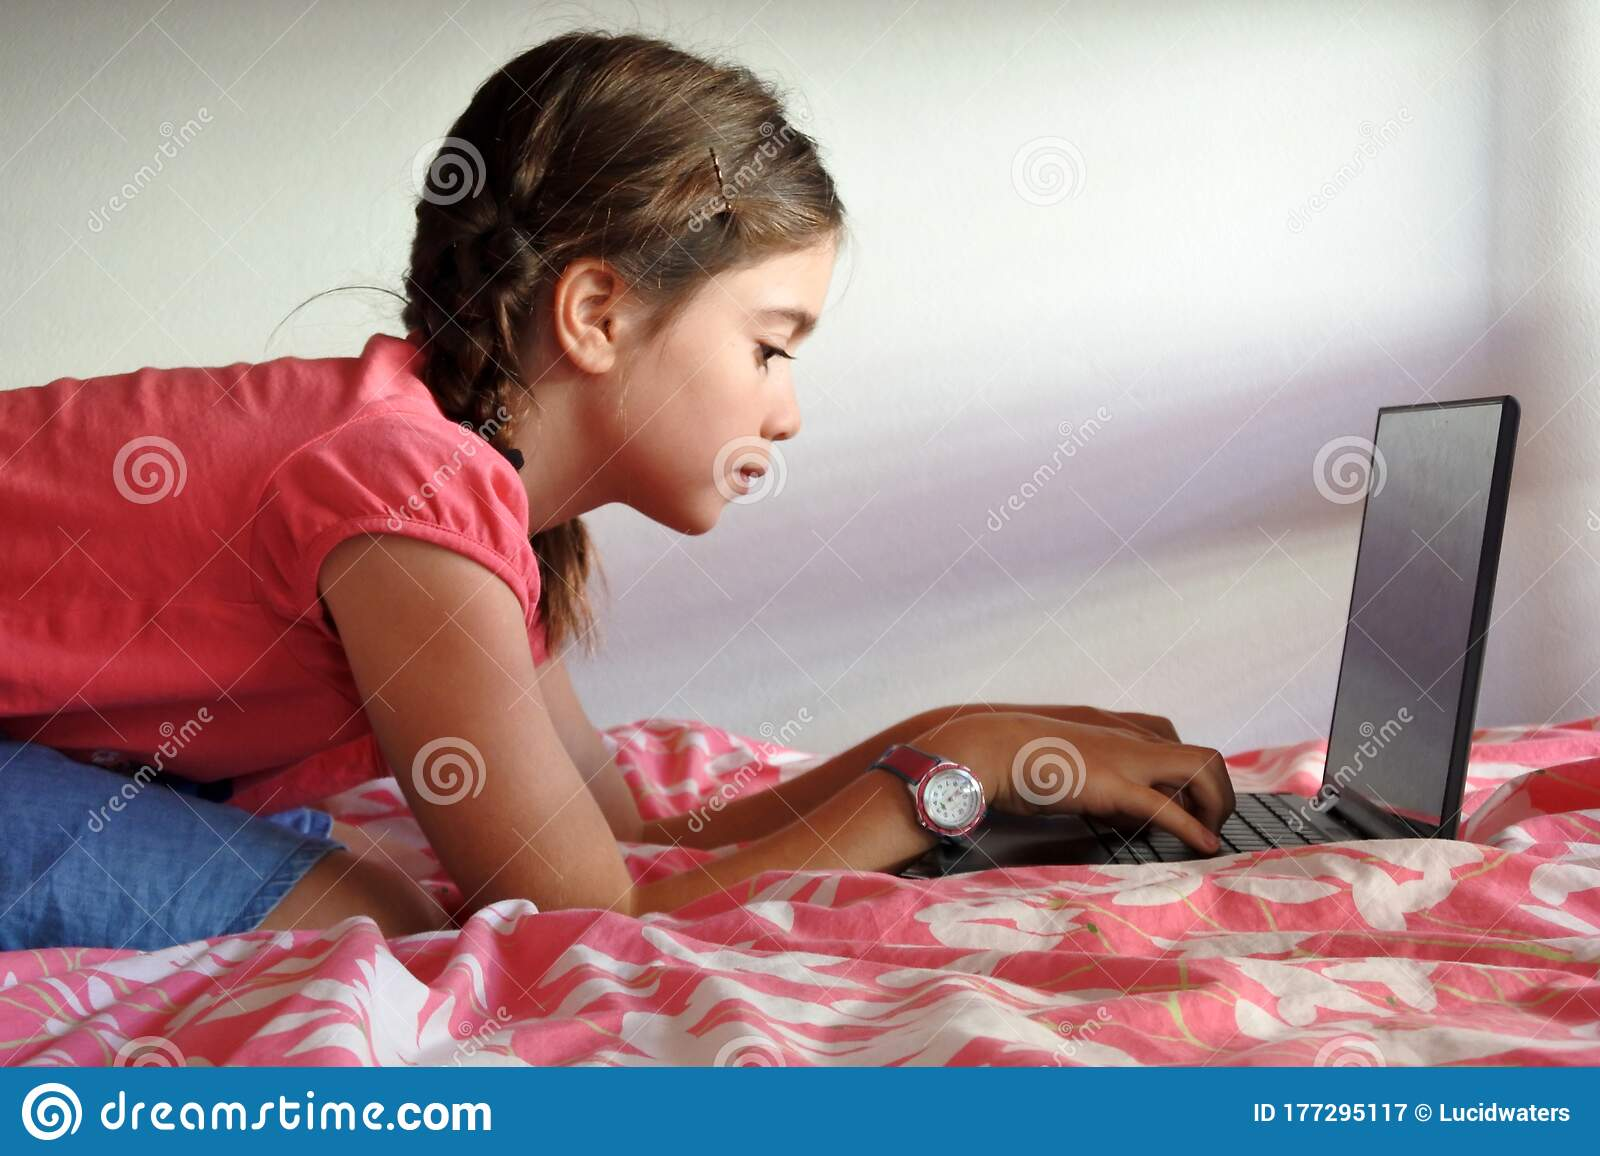 Bored Young Girl Age 10 Using A Laptop In Bedroom While Forced To Stay At  Home Because Government Policies Efforts To Prevent Stock Image - Image of  academic, bored: 177295117